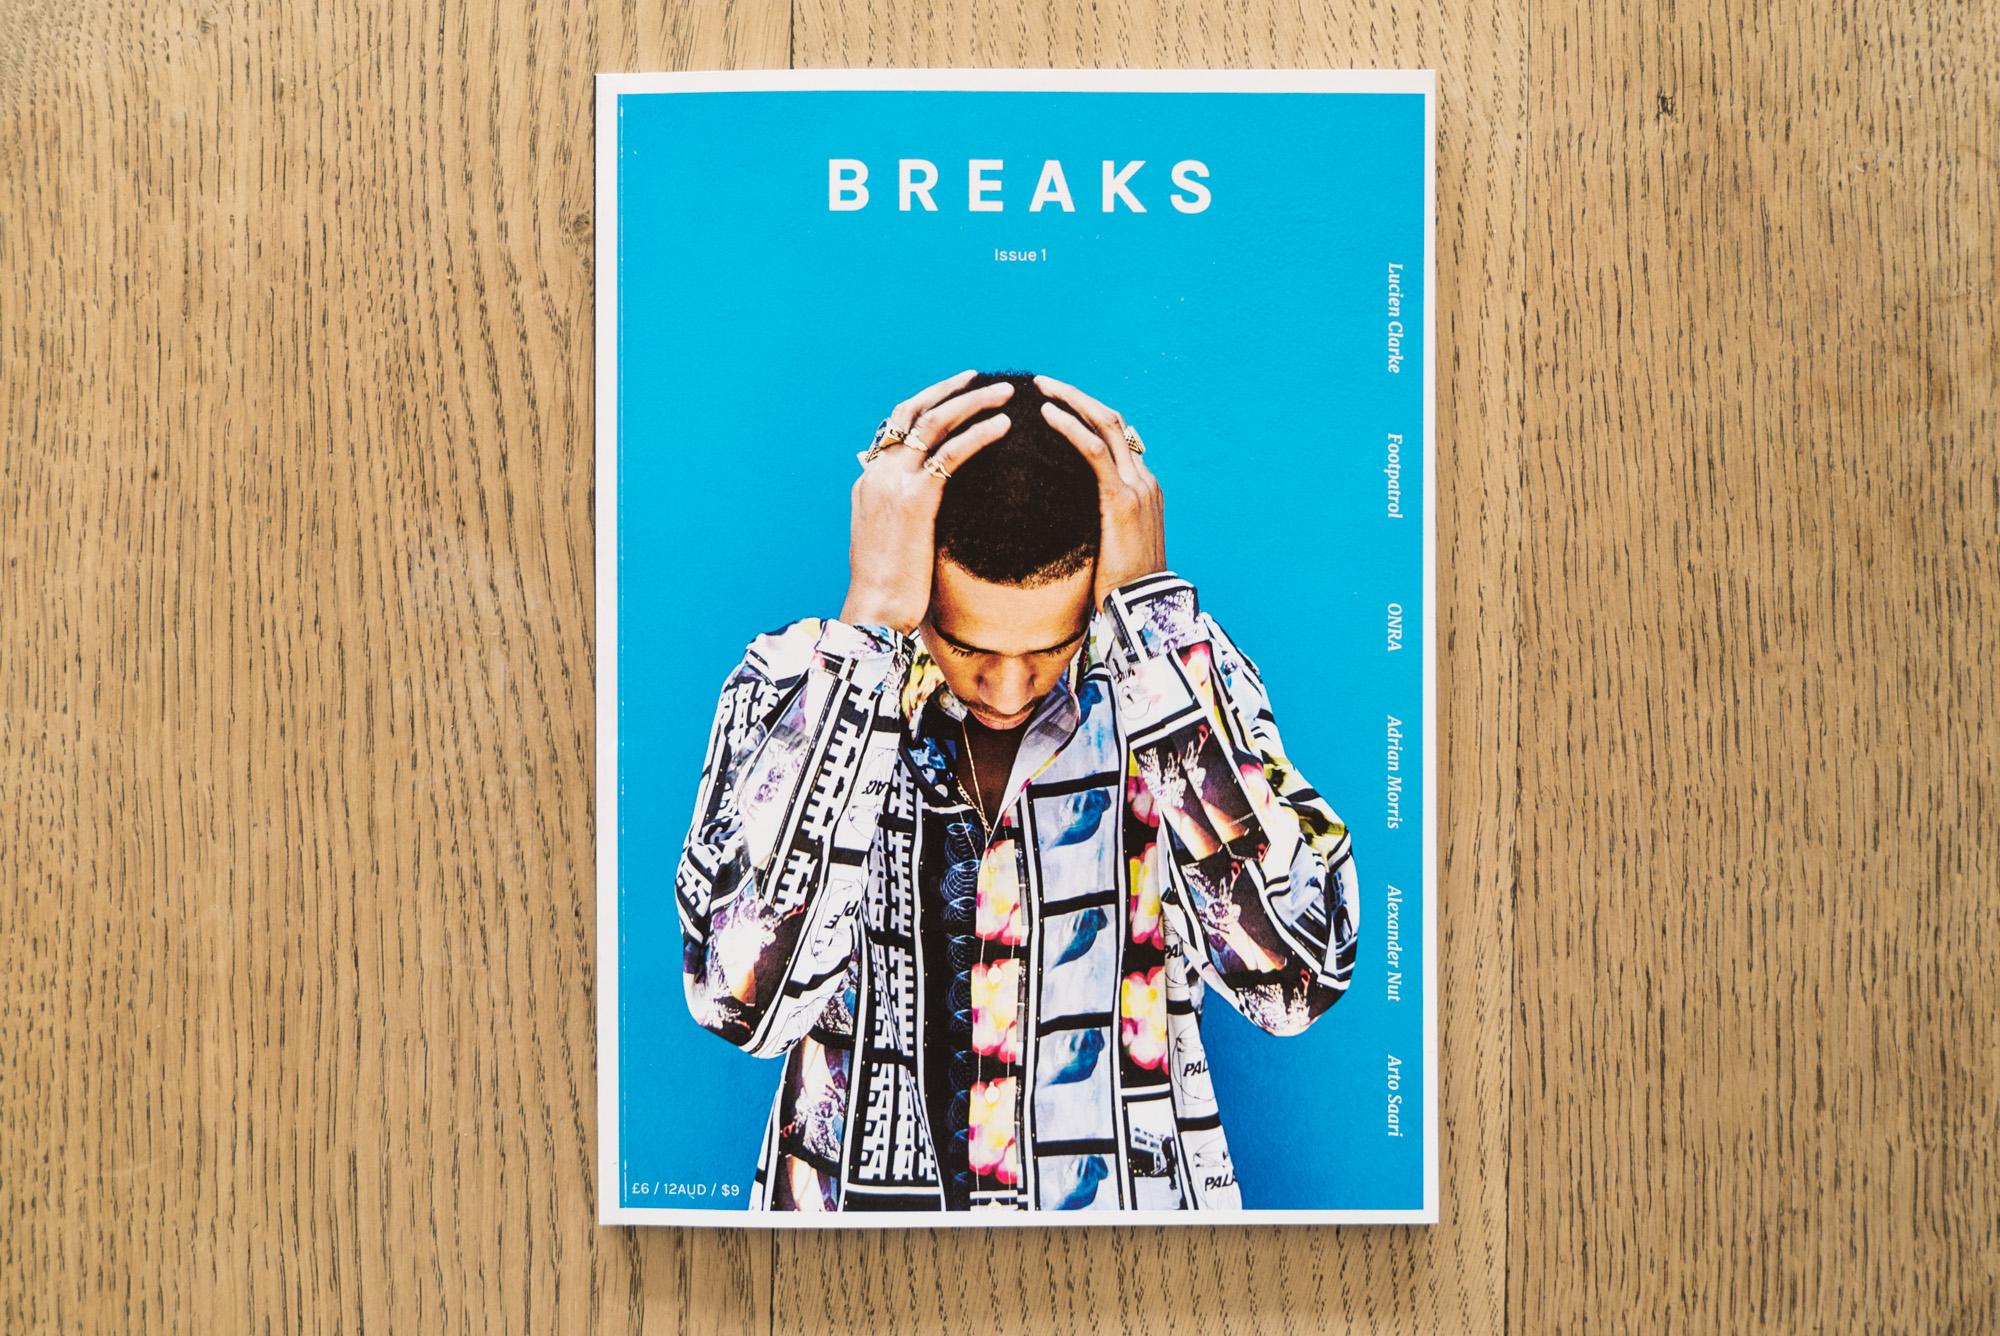 Breaks-Magazine-Issue-1-ecom-1